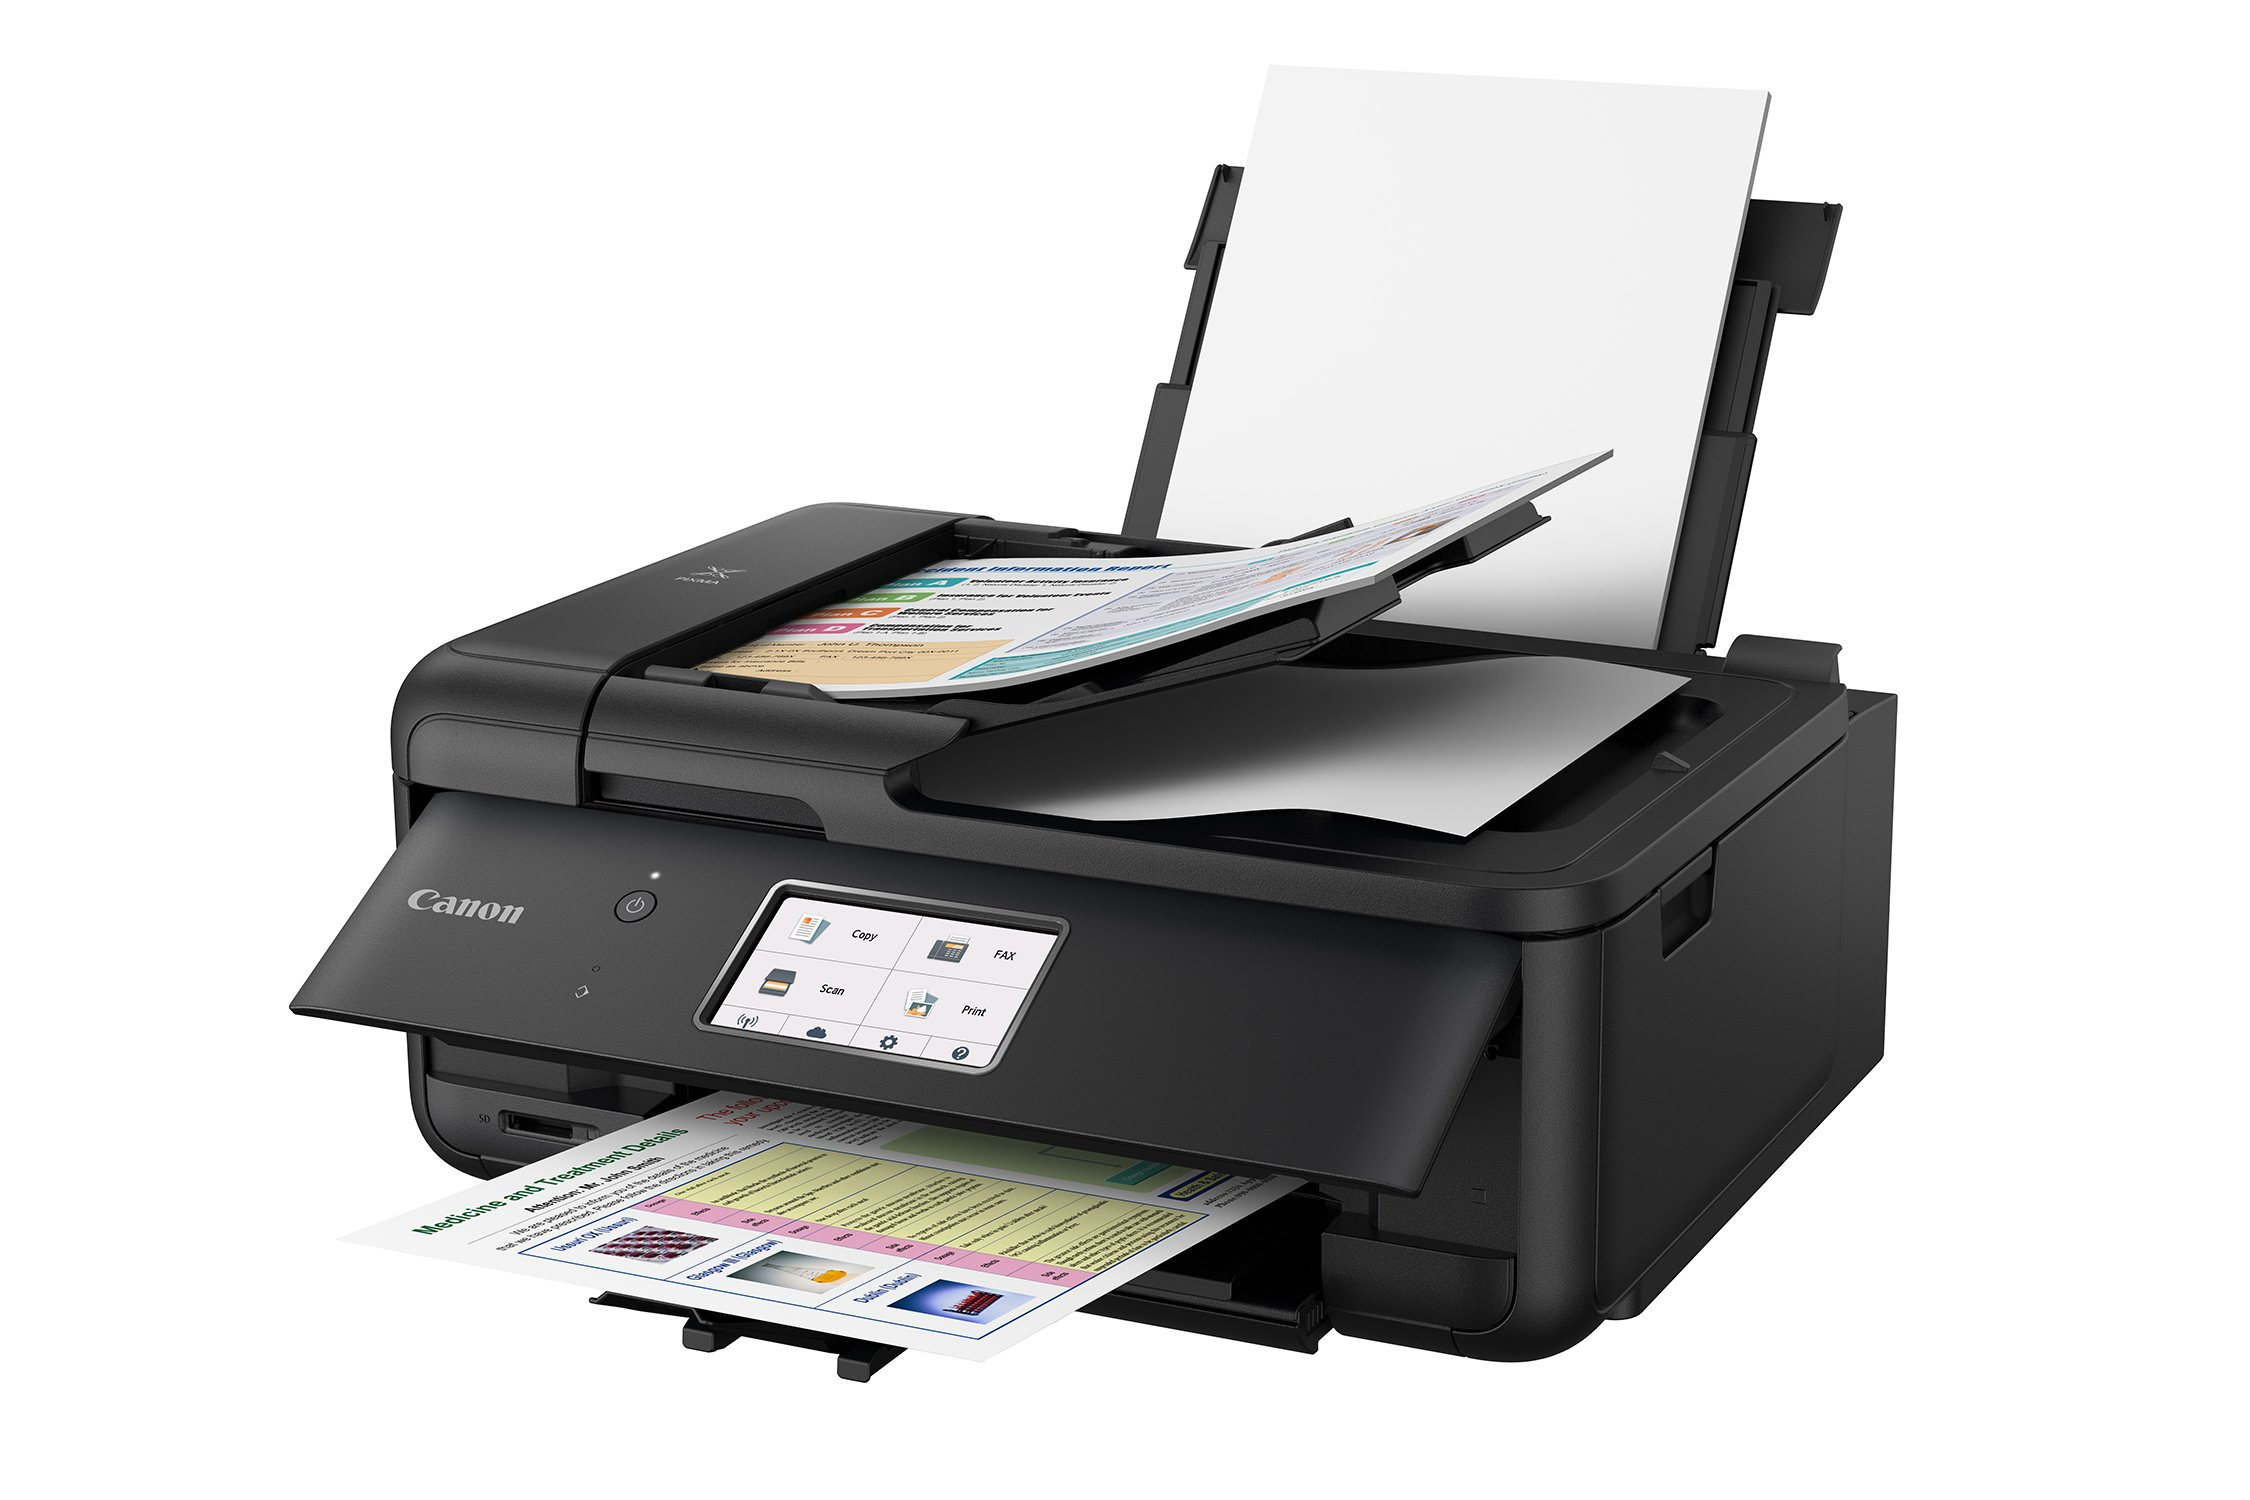 Canon PIXMA TR8520 Wireless All in One Printer | Mobile Printing | Photo and Document Printing, AirPrint(R) and Google Cloud Printing, Black by Canon (Image #2)